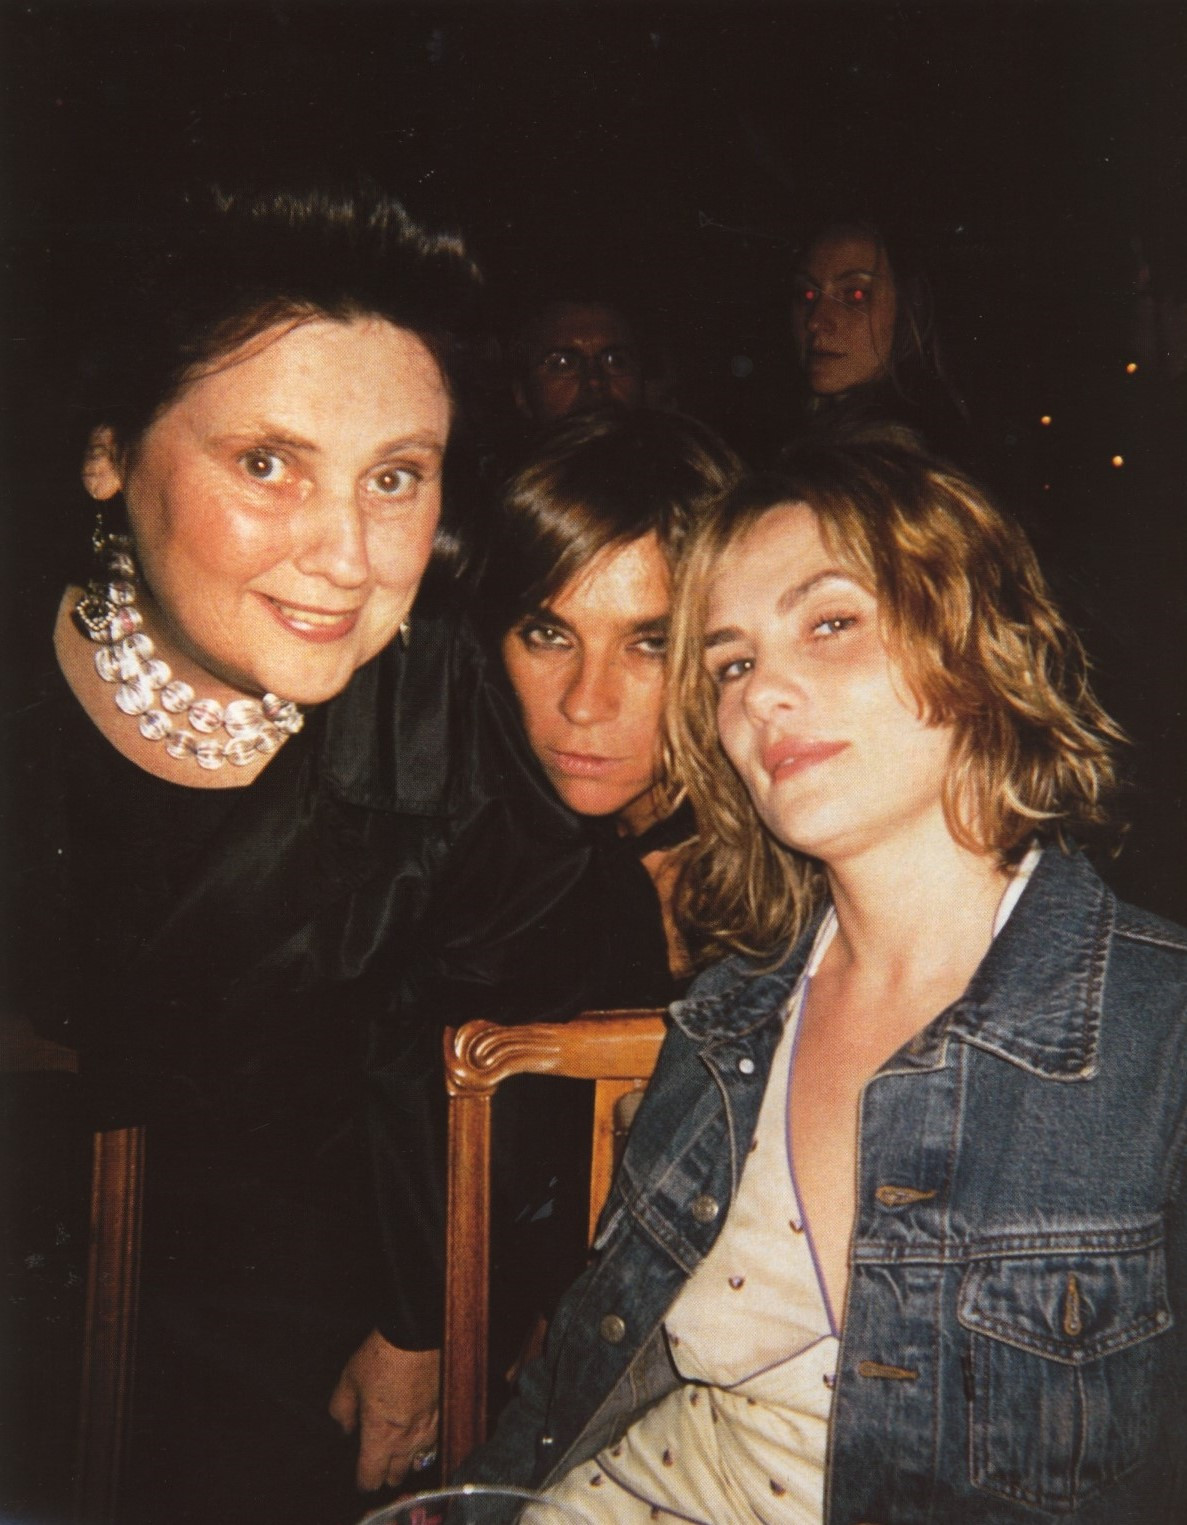 SUZY MENKES, CARINE ROITFELD AND EMANUELLE SEIGNER | TOM FORD PRIVATE DINNER FOR YSL | LUCAS CARTON | PARIS | JUNE 2002 | SELF SERVICE MAGAZINE | FALL/WINTER 2002